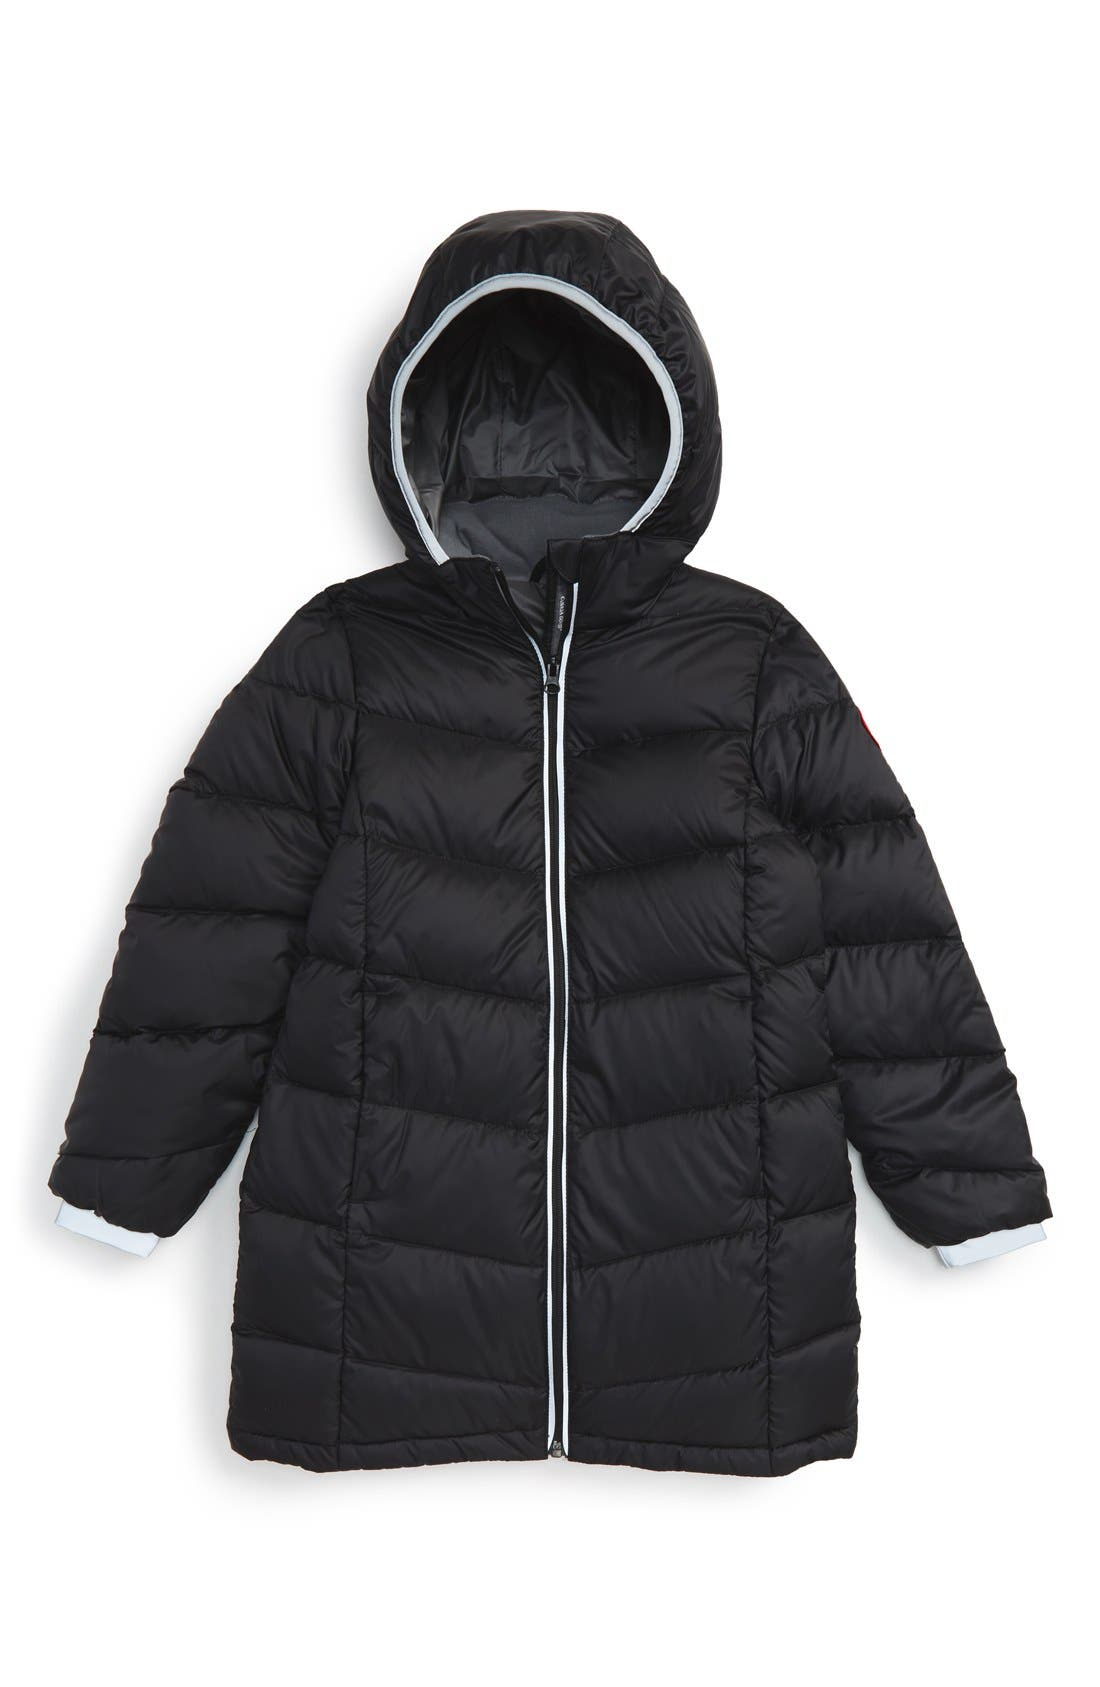 Main Image - Canada Goose 'Madeline' Hooded Down Jacket (Little Girls & Big Girls)